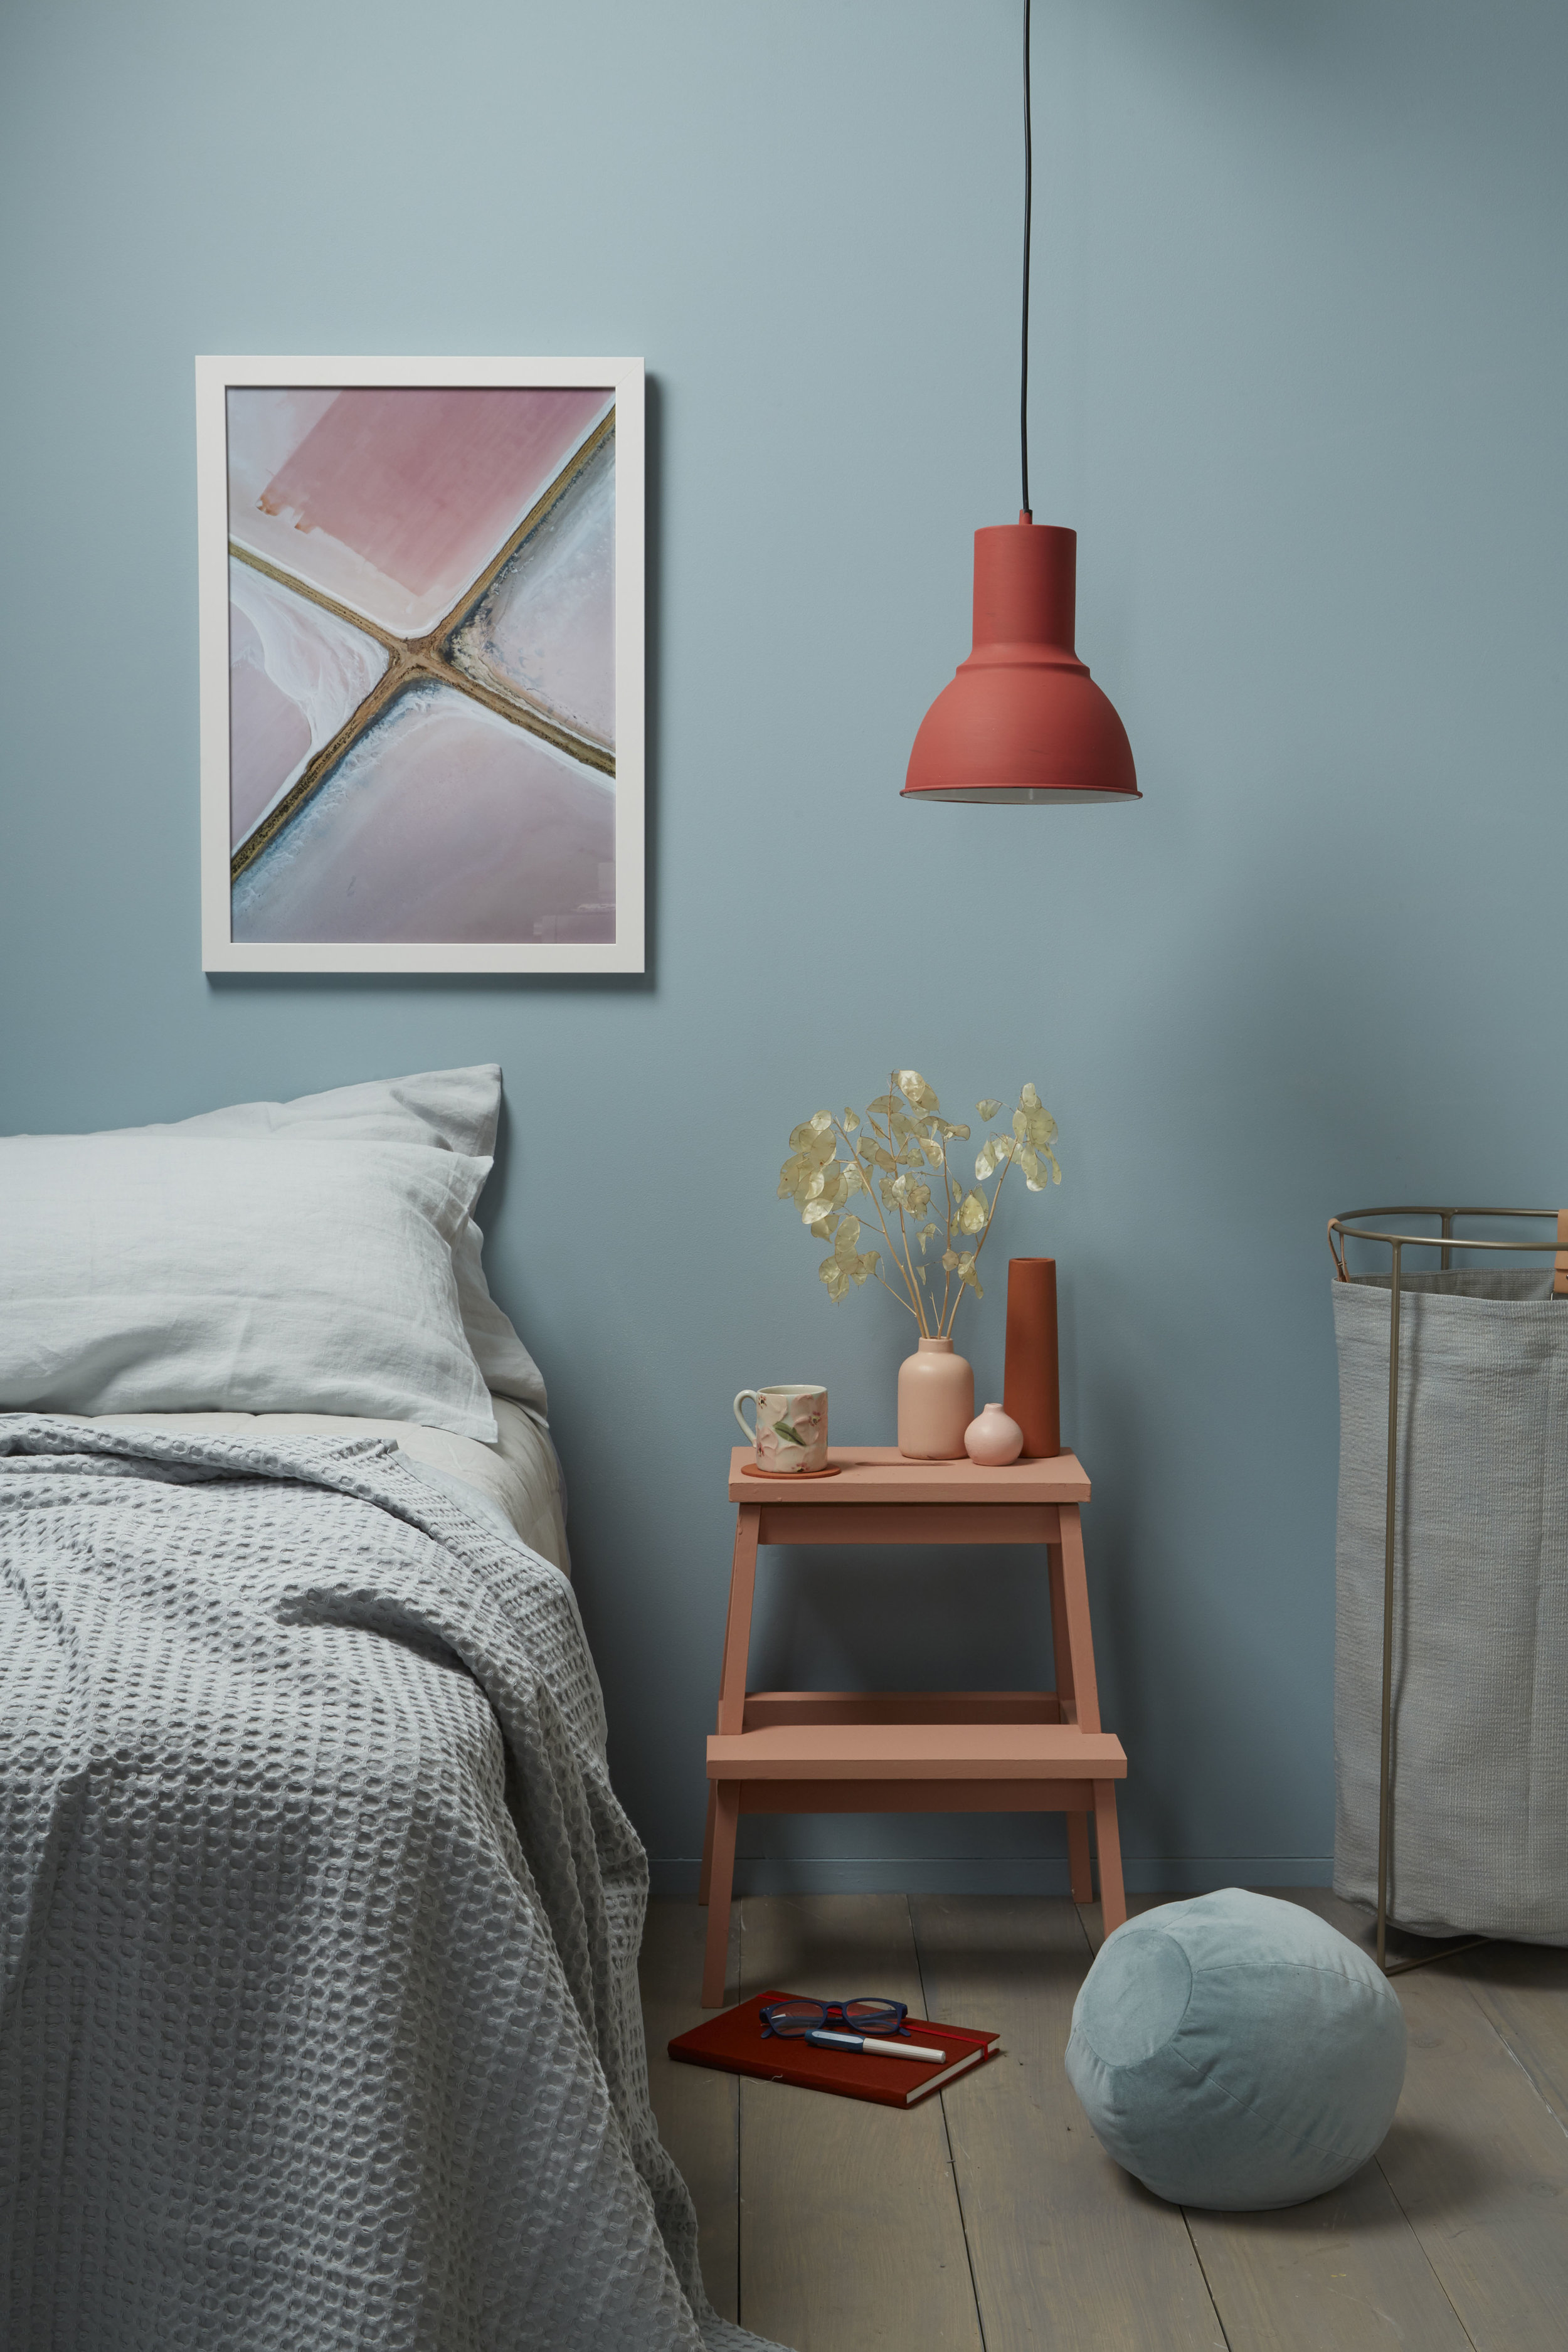 Lisa Morton,bedroom,blue,Resene Raindance+Just Dance+Sunbaked+Greywash+Soulful+Shabby Chic,photo Bryce CarletonPT3.jpg